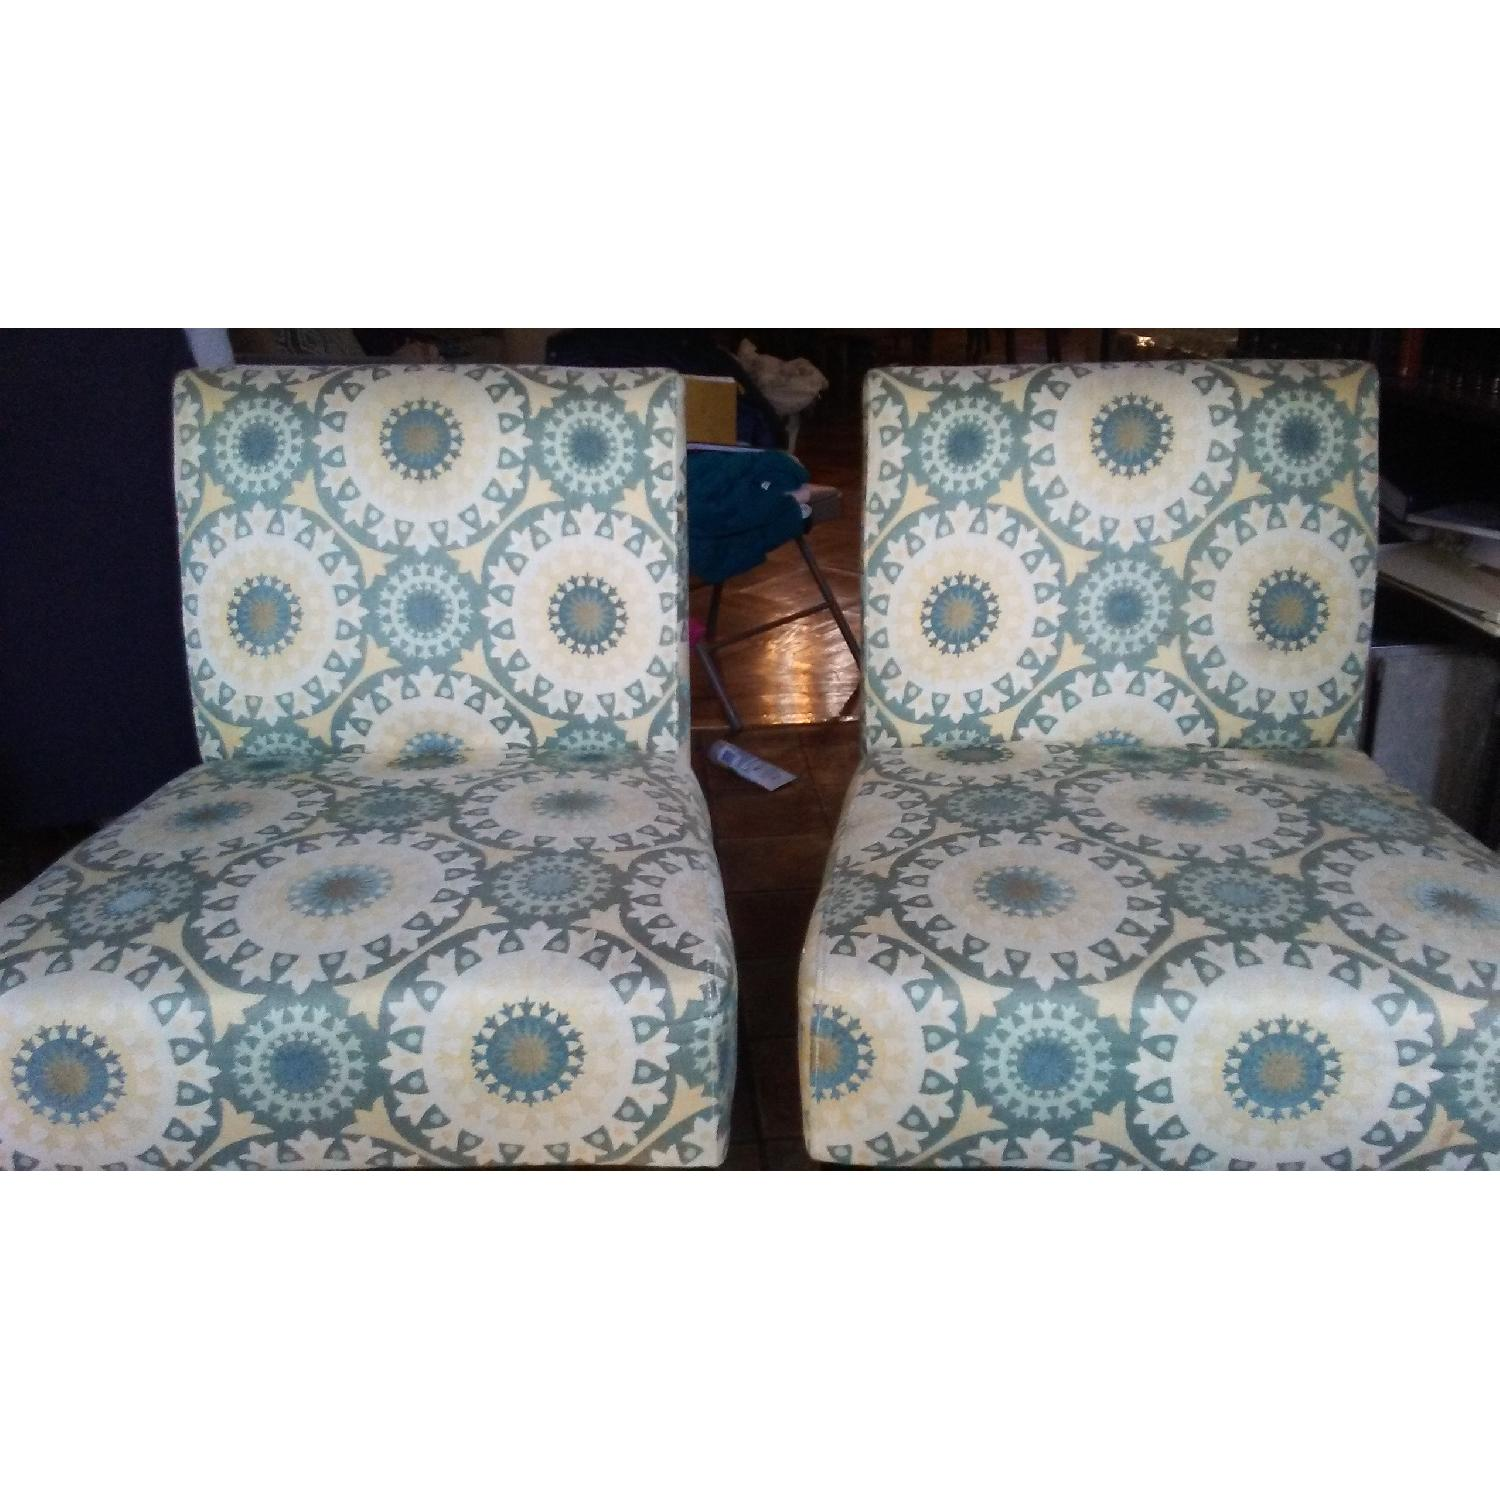 Handy Living Patterned Slipper Chairs - image-2